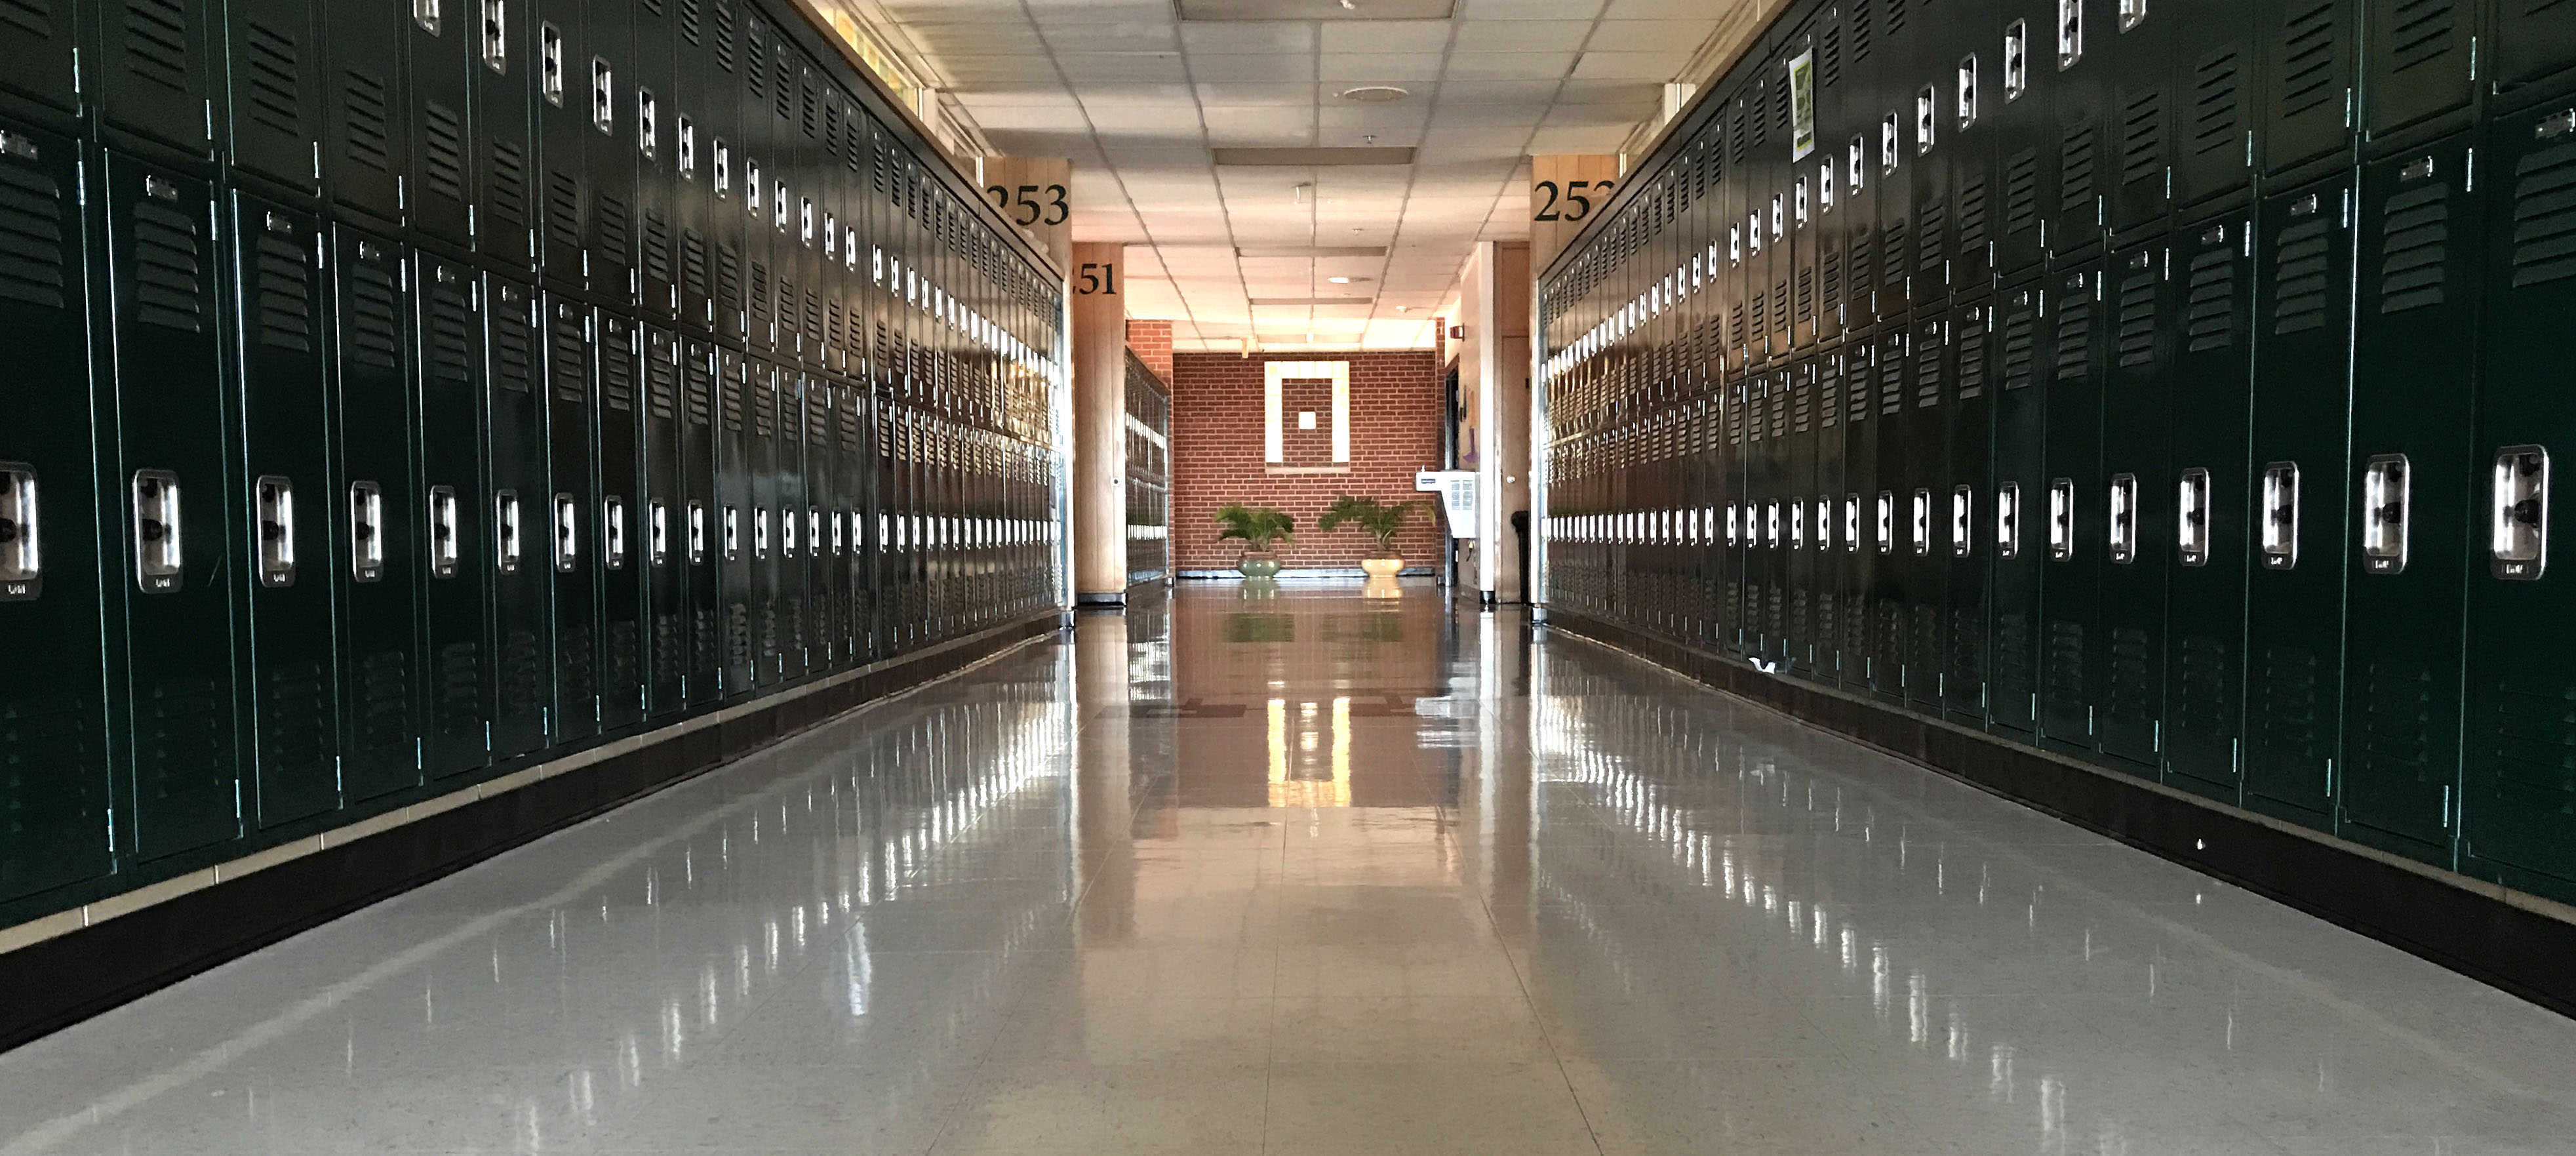 hallway at pius x high school